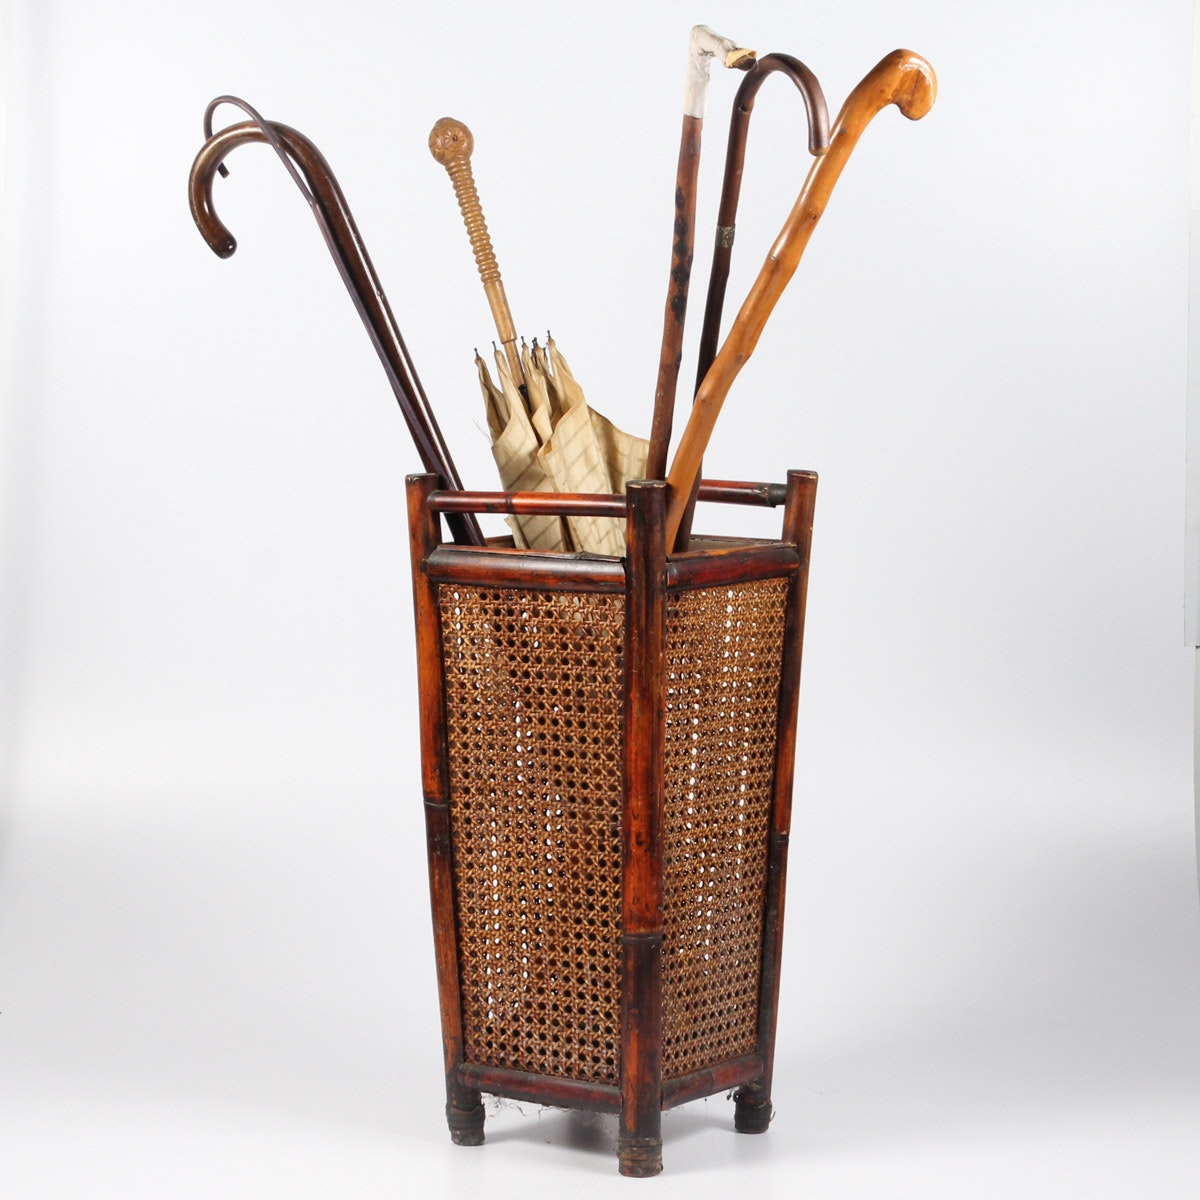 Antique and Vintage Canes